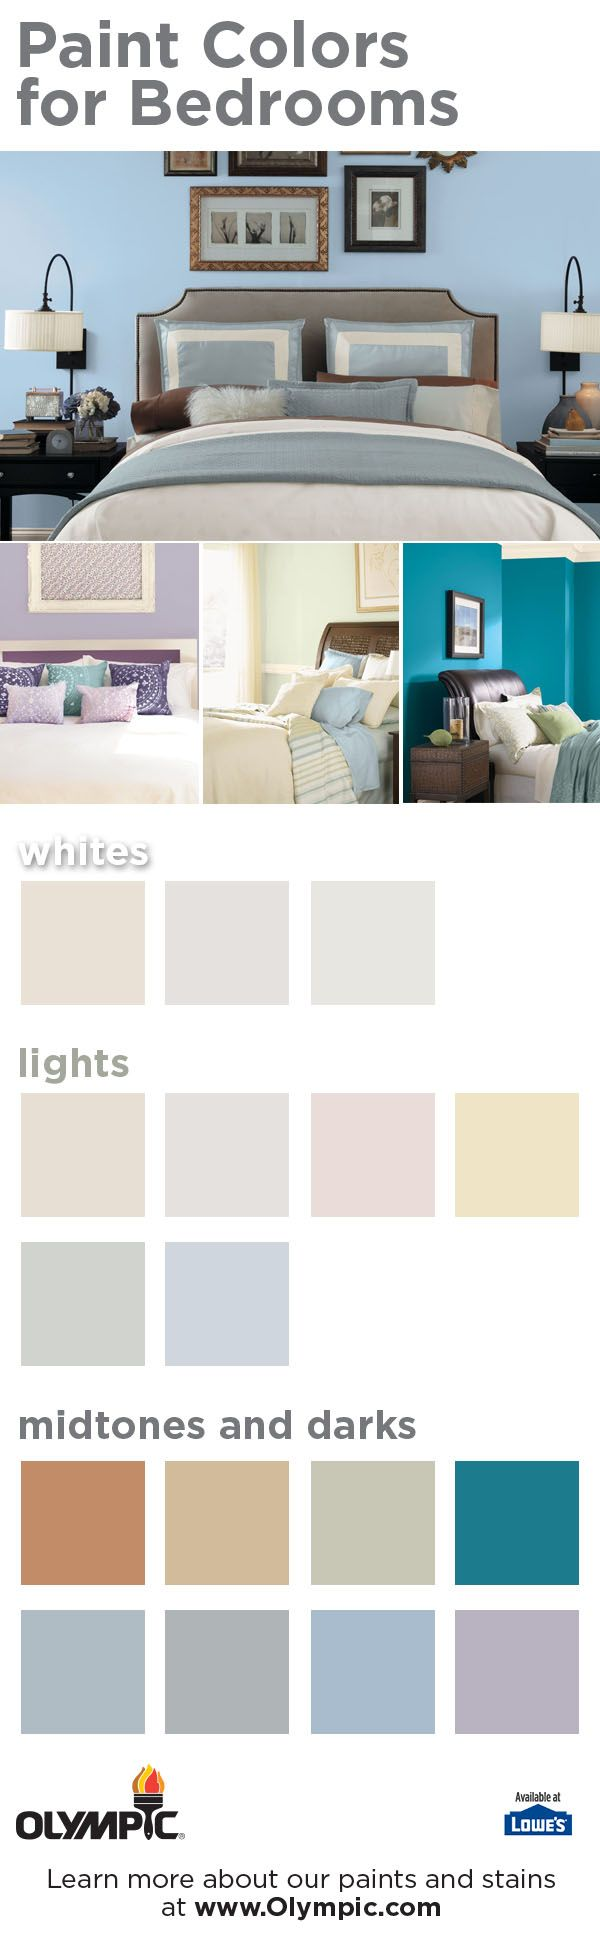 Paint colors for in bedroom traditional with exposed beams butter - The Bedroom Paint Color